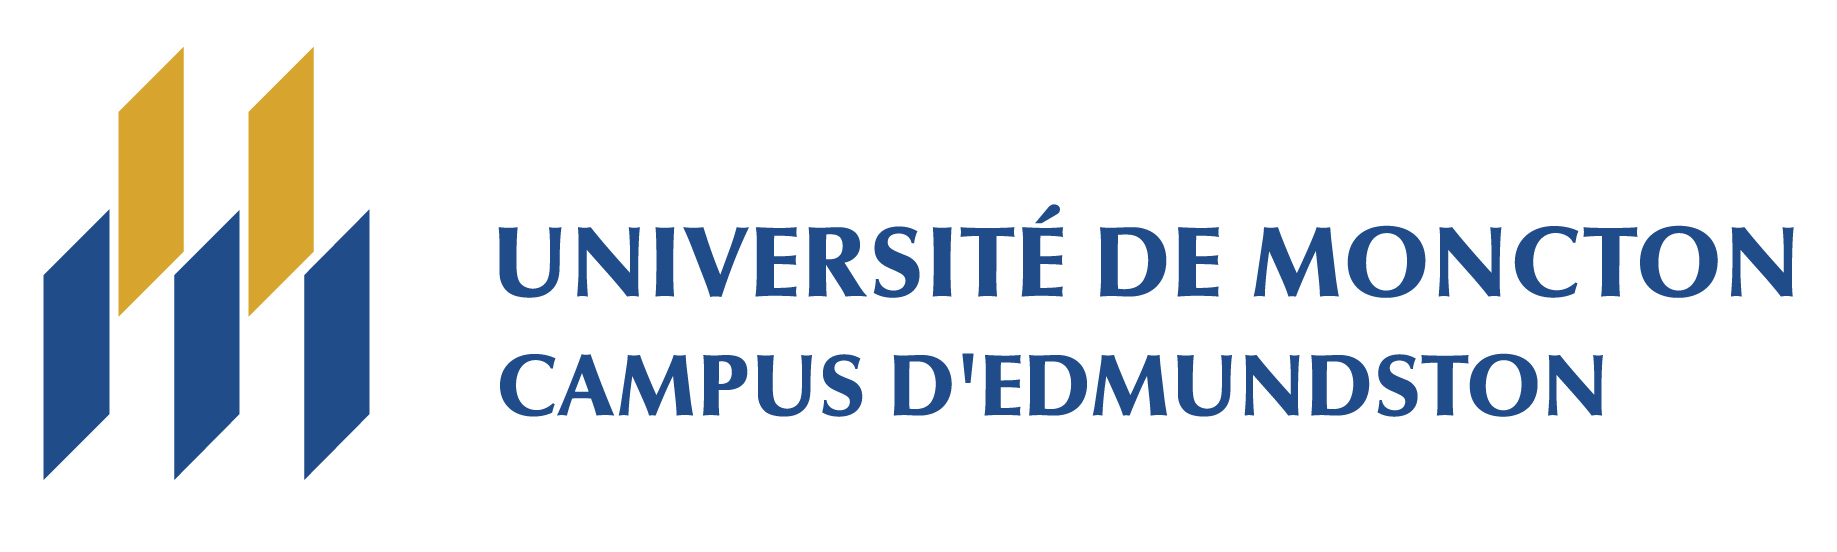 Université de Moncton – Campus d'Edmundston